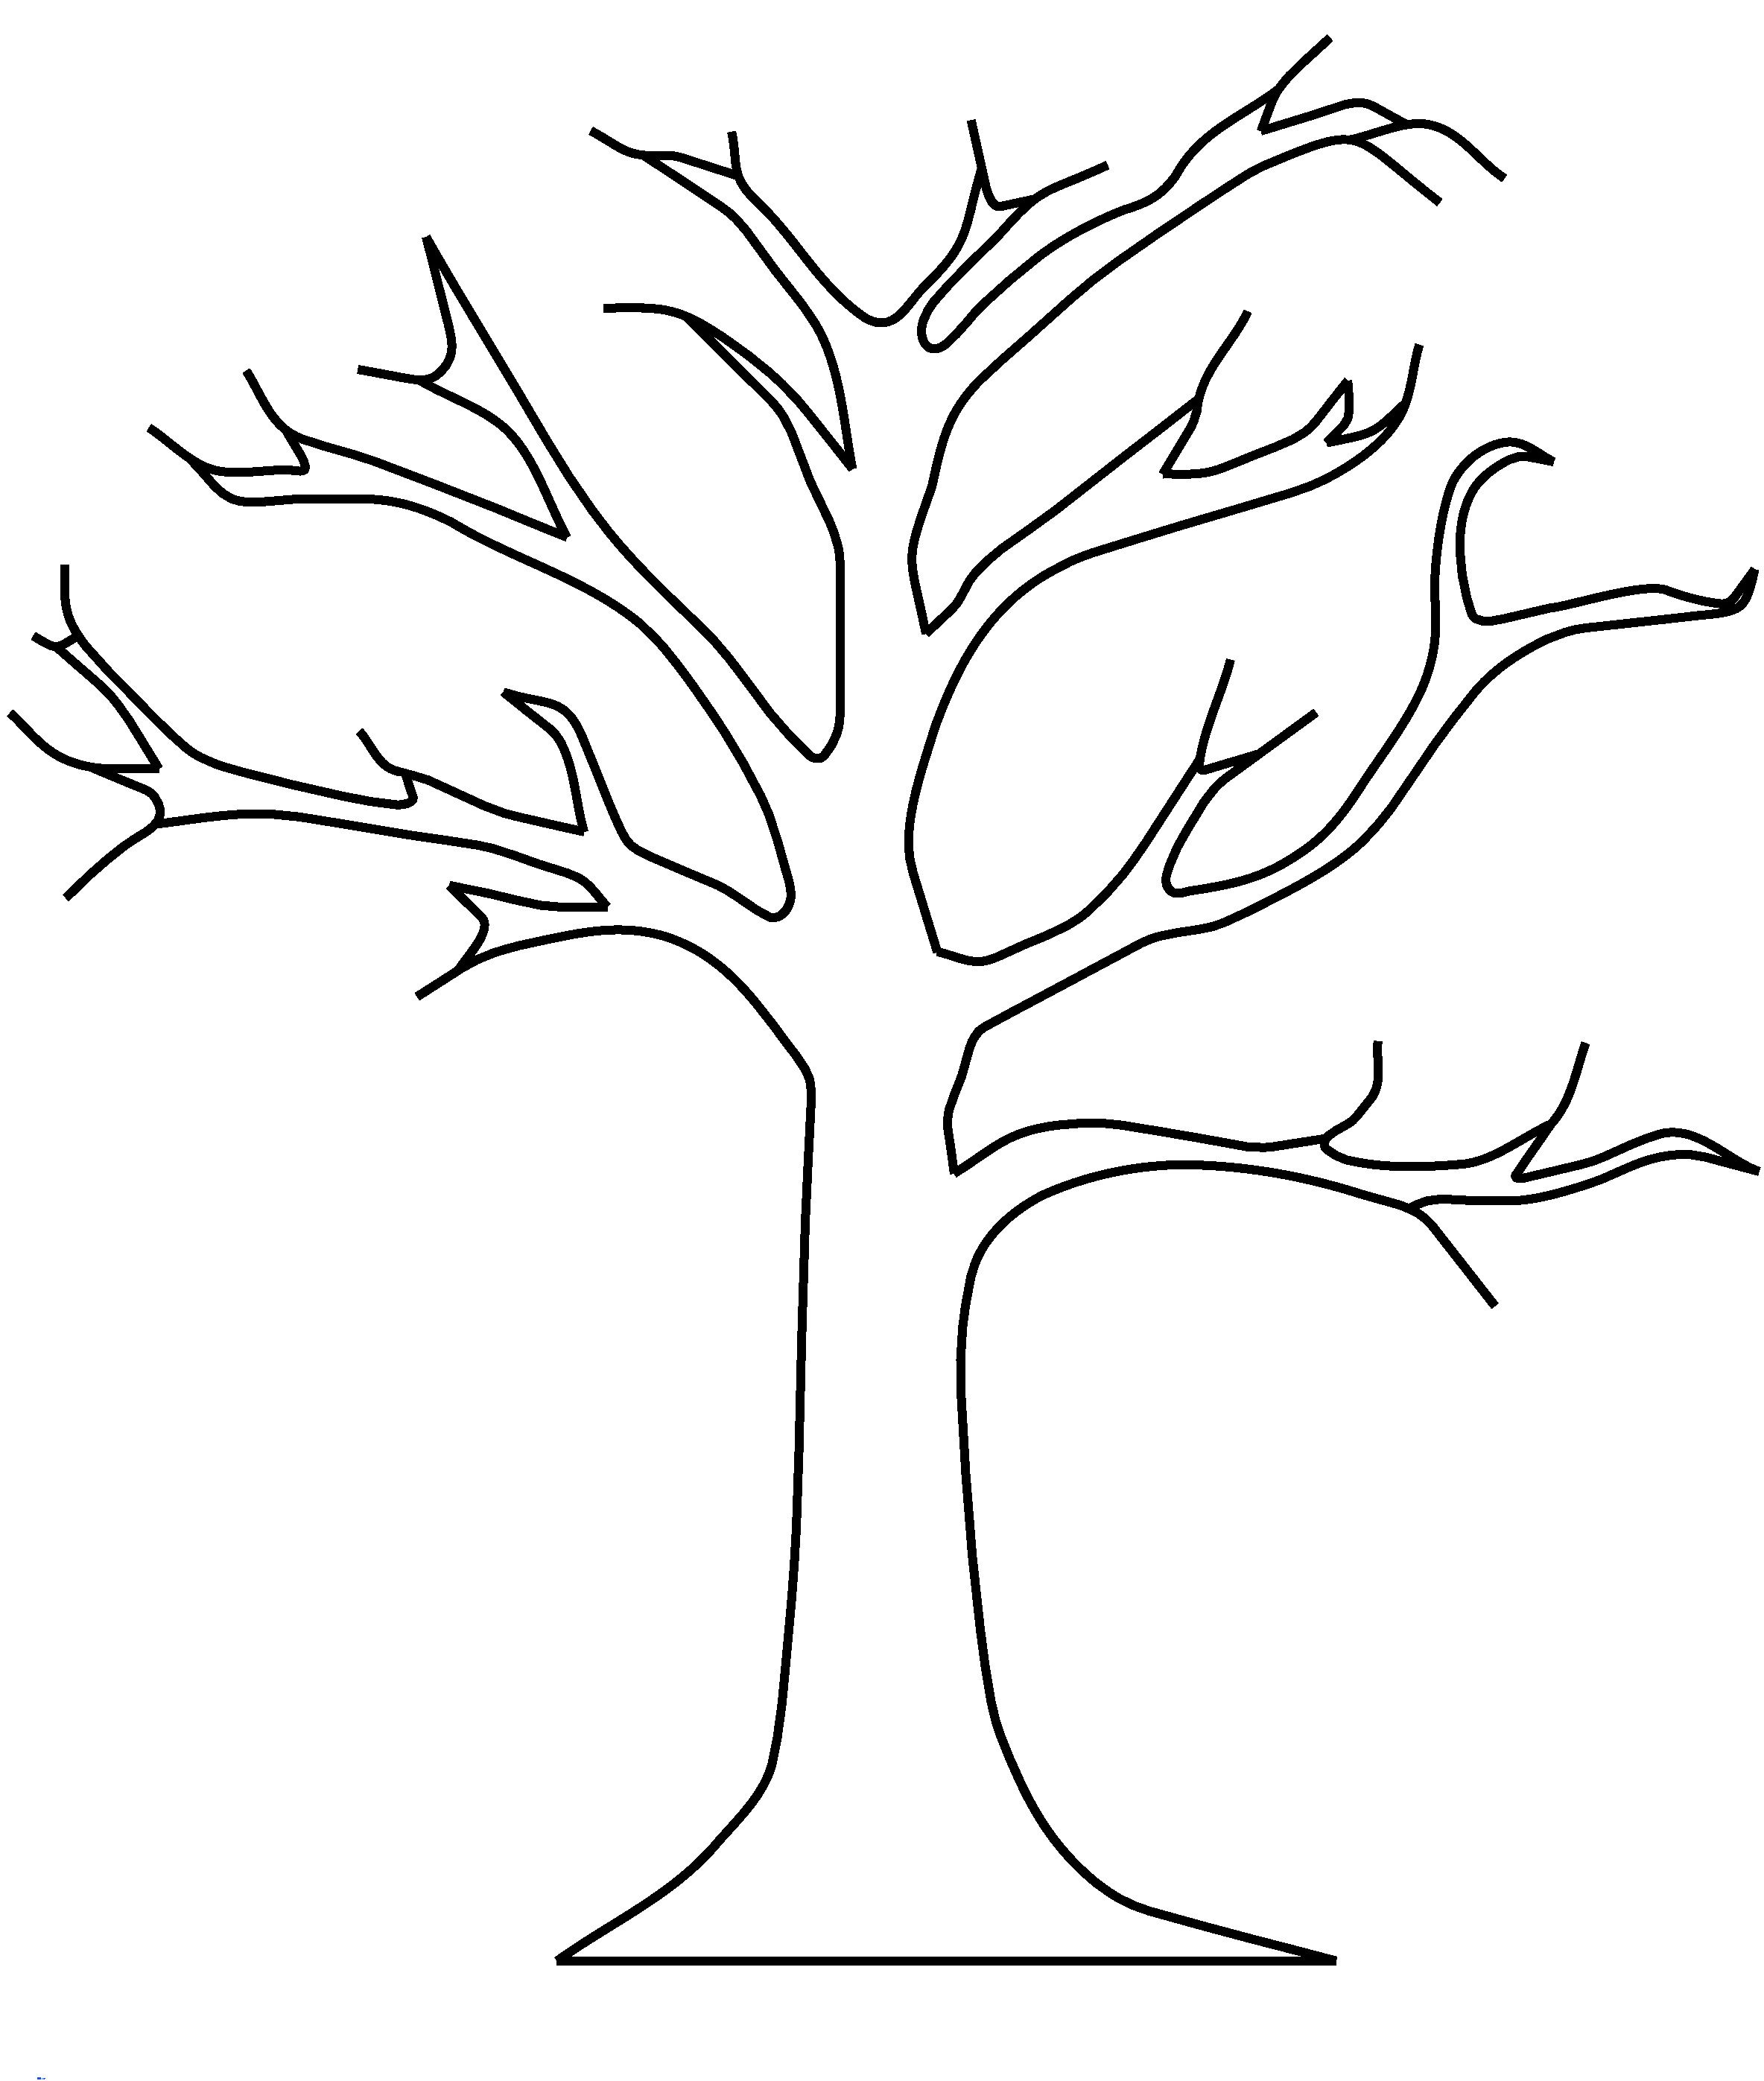 Apple Tree Template.dgn: Apple Tree Without Leaves Coloring Pages ...